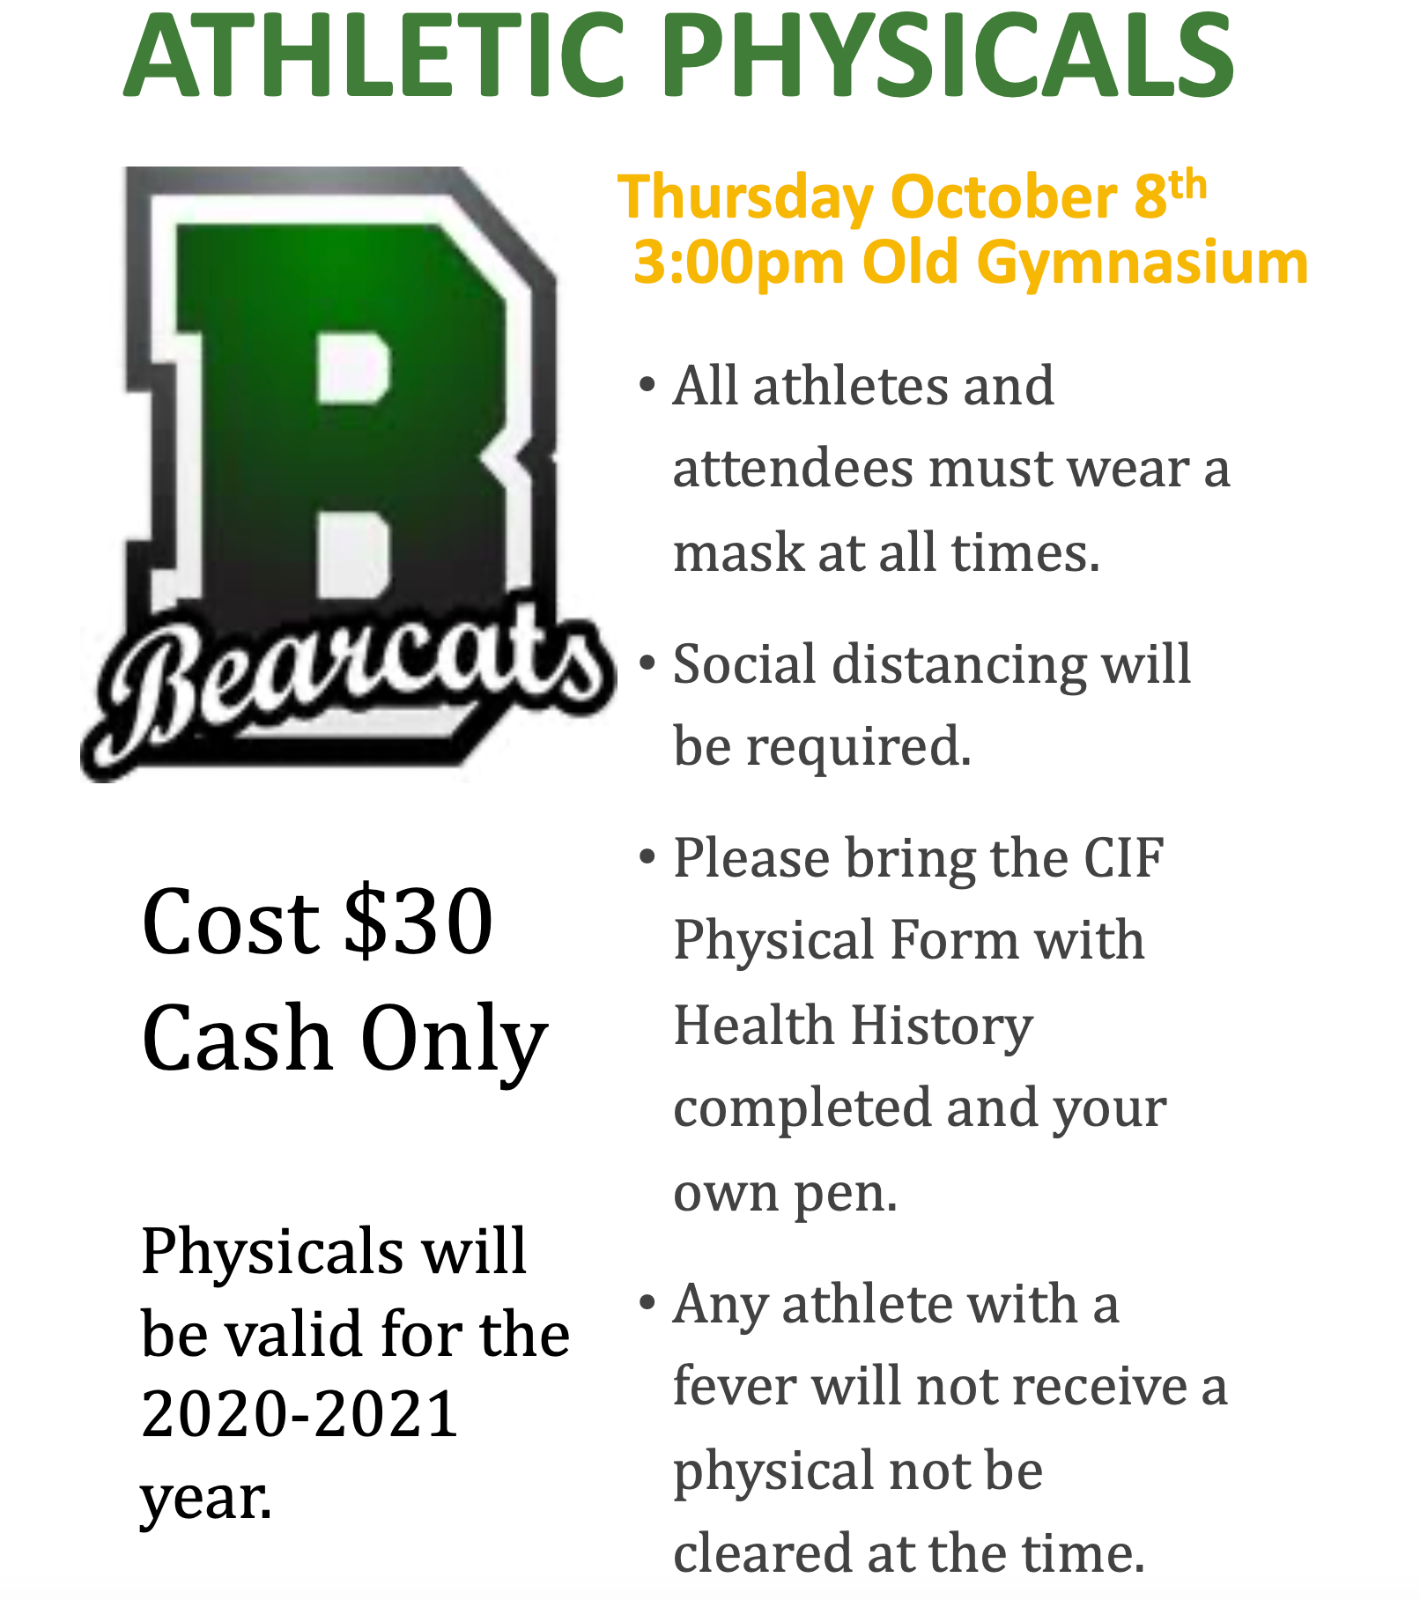 Athletic Physicals October 8th